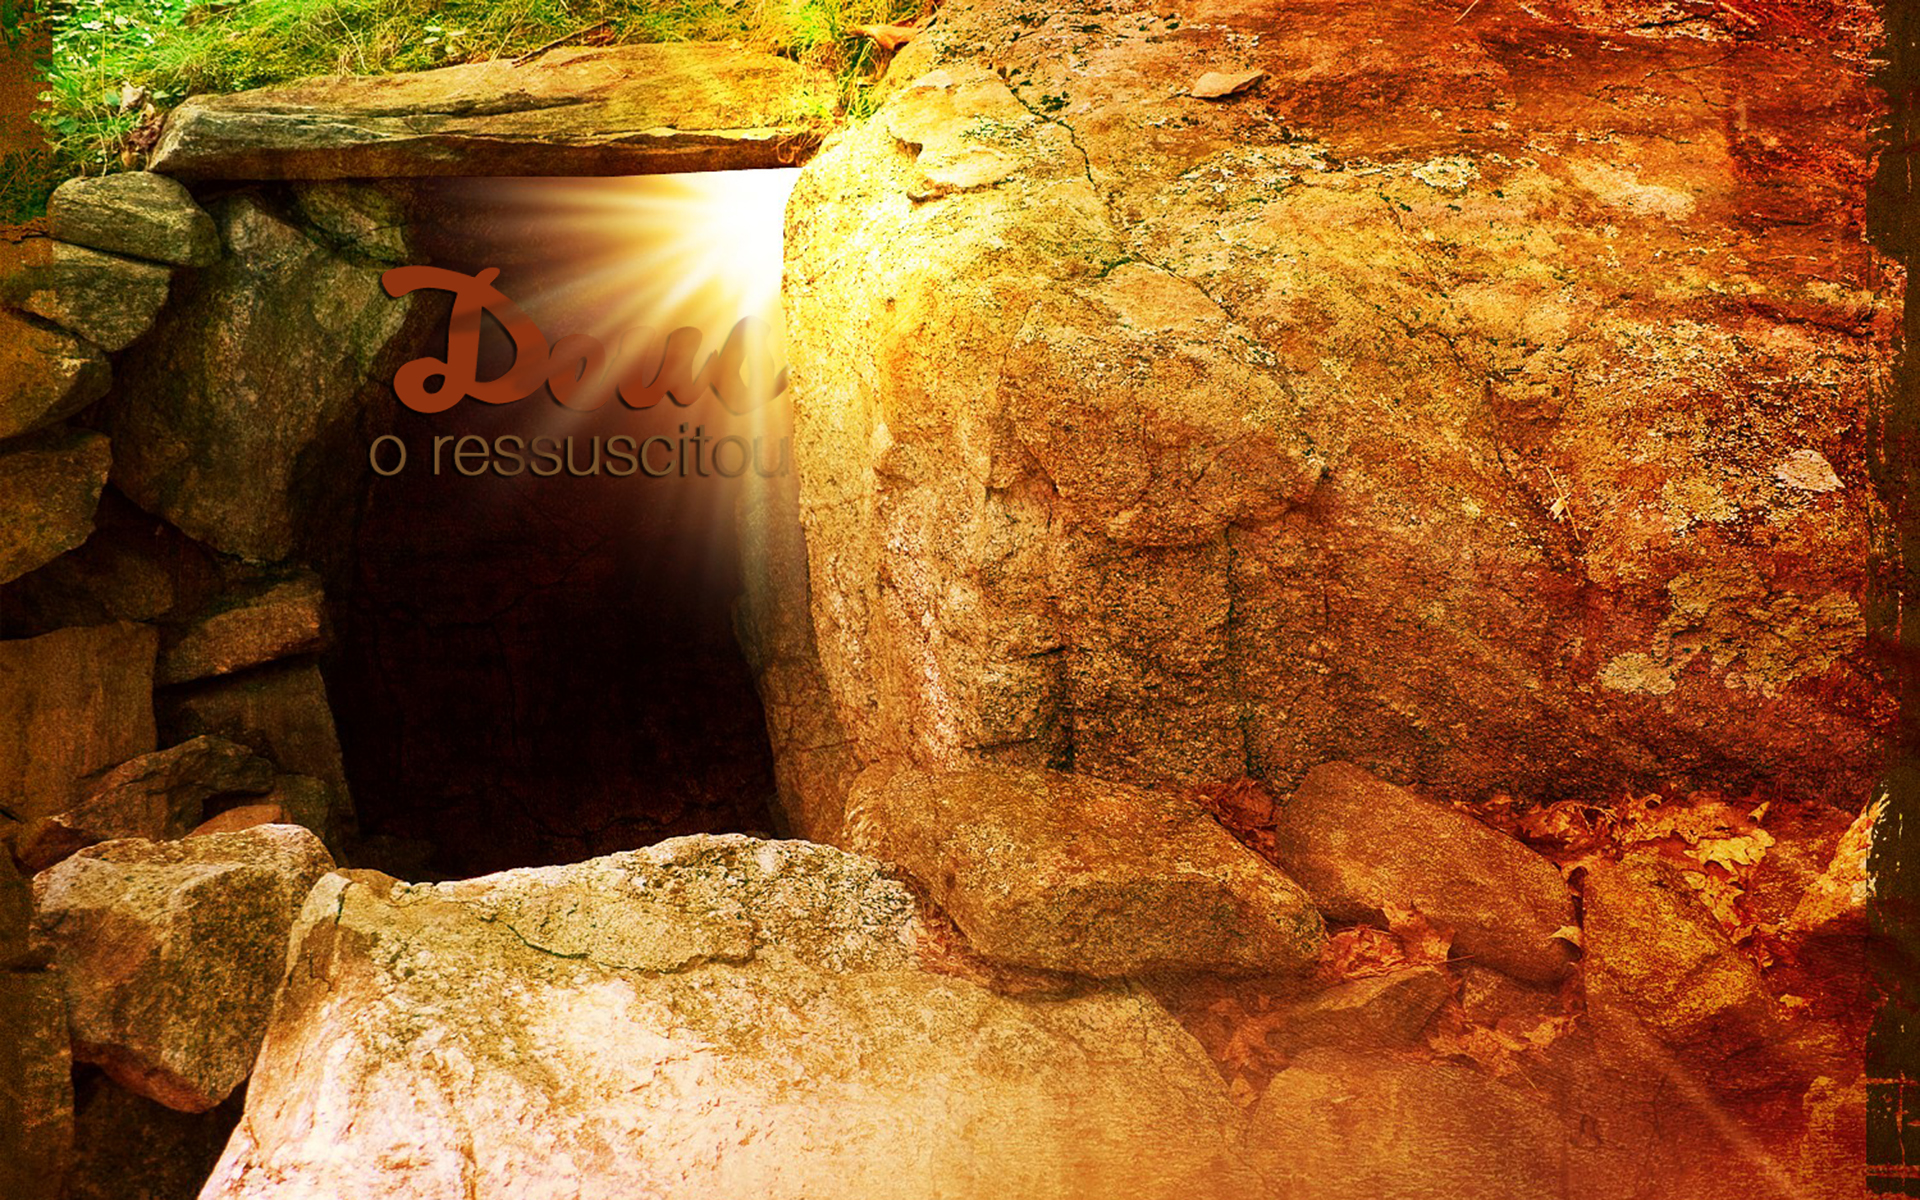 Jesus Christ Wallpapers And Quotes Deus O Ressuscitou Wallpapers Crist 227 Os